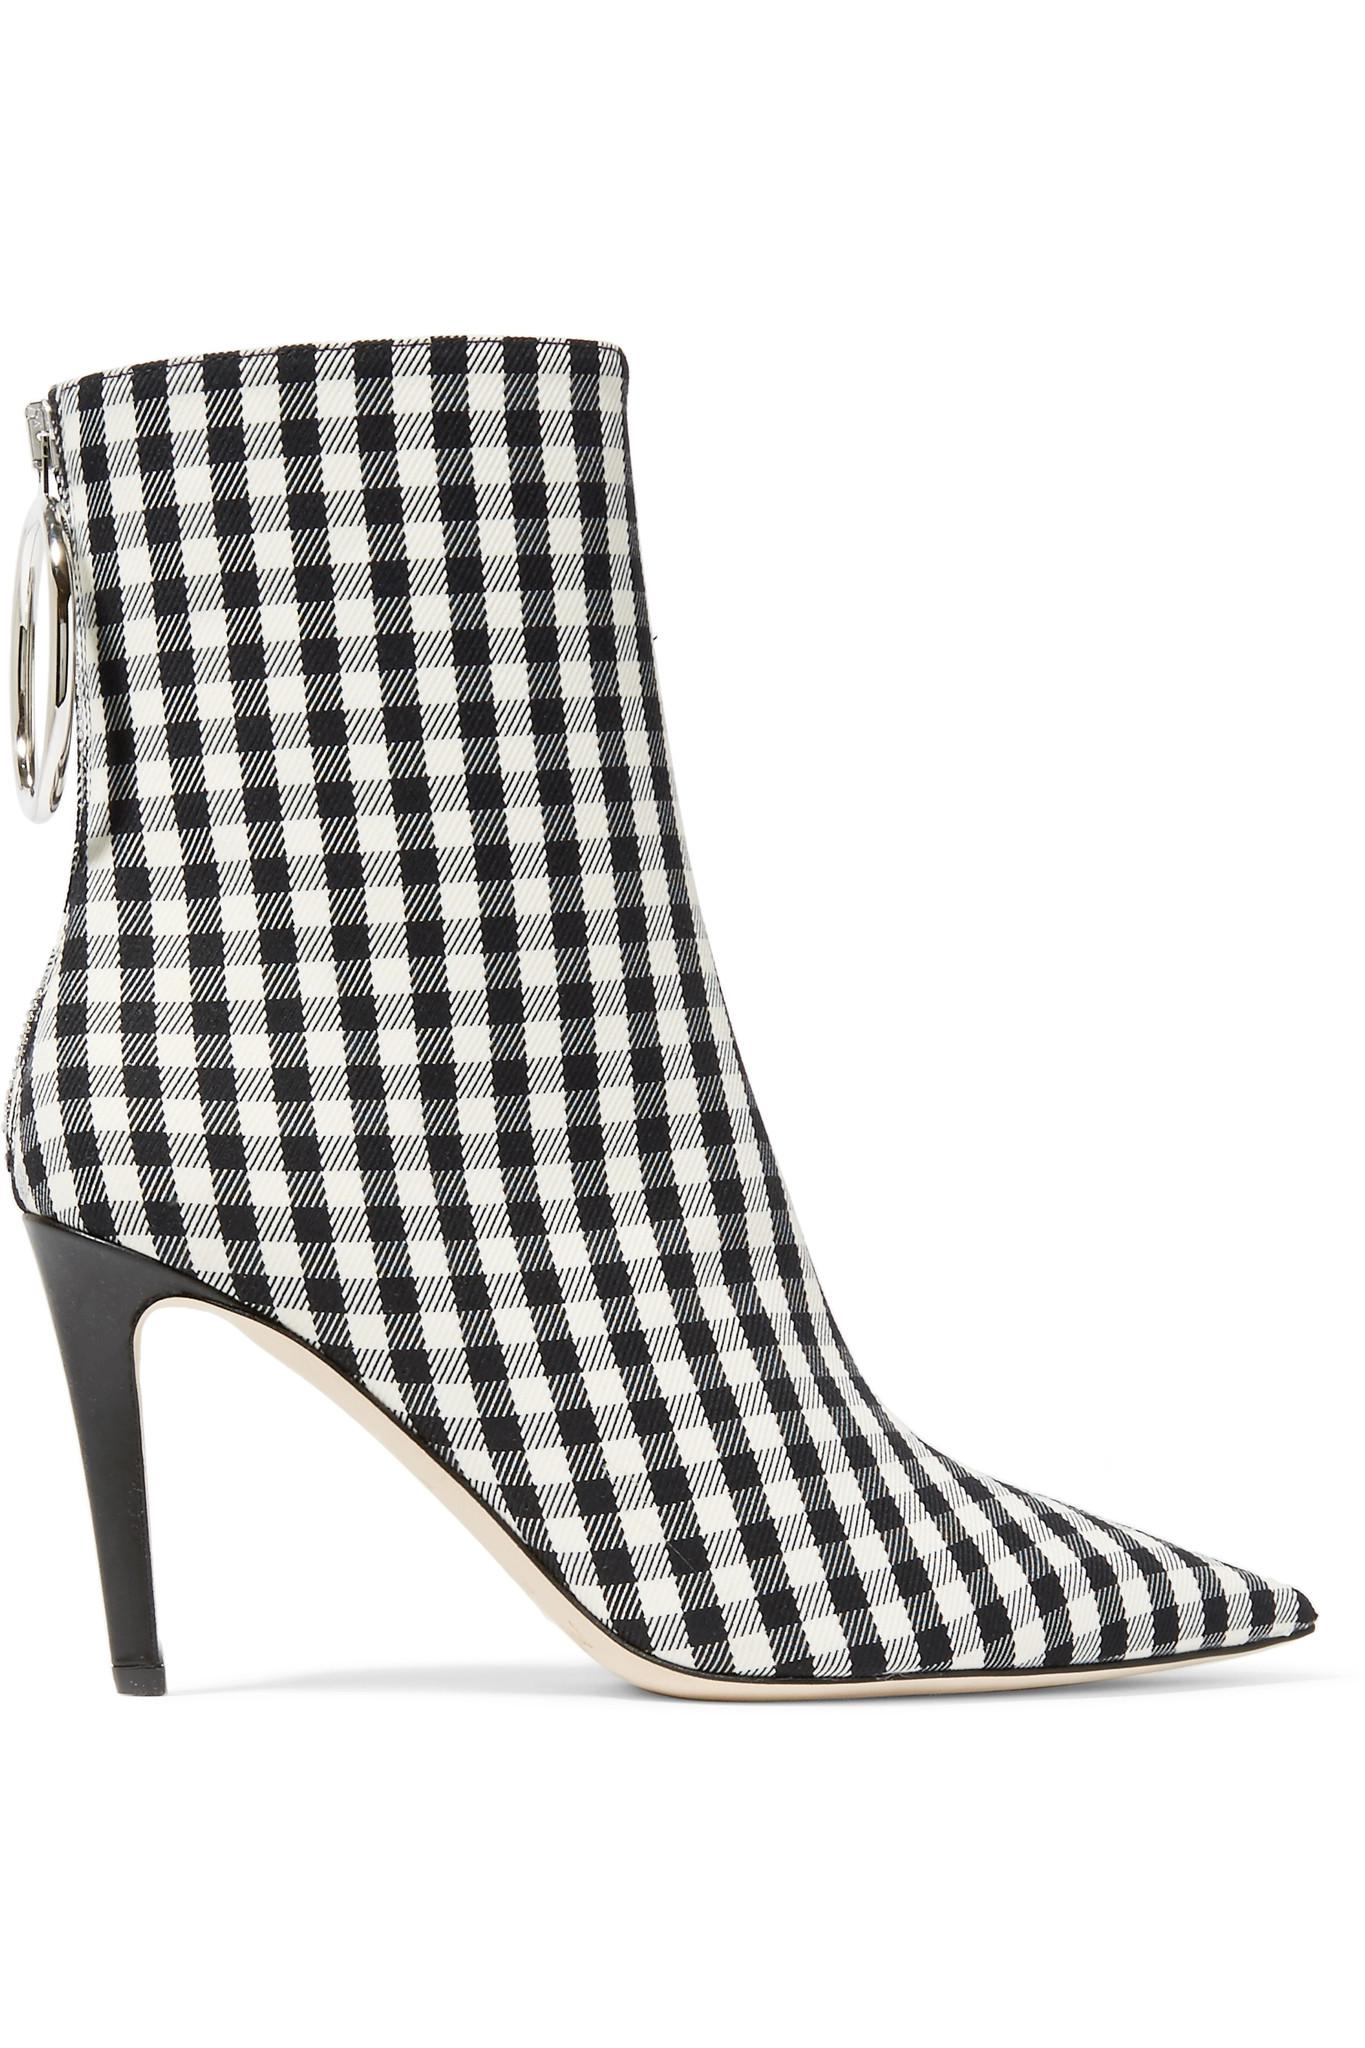 077a590f507678 Lyst - Monse Gingham Canvas Sock Boots in Black